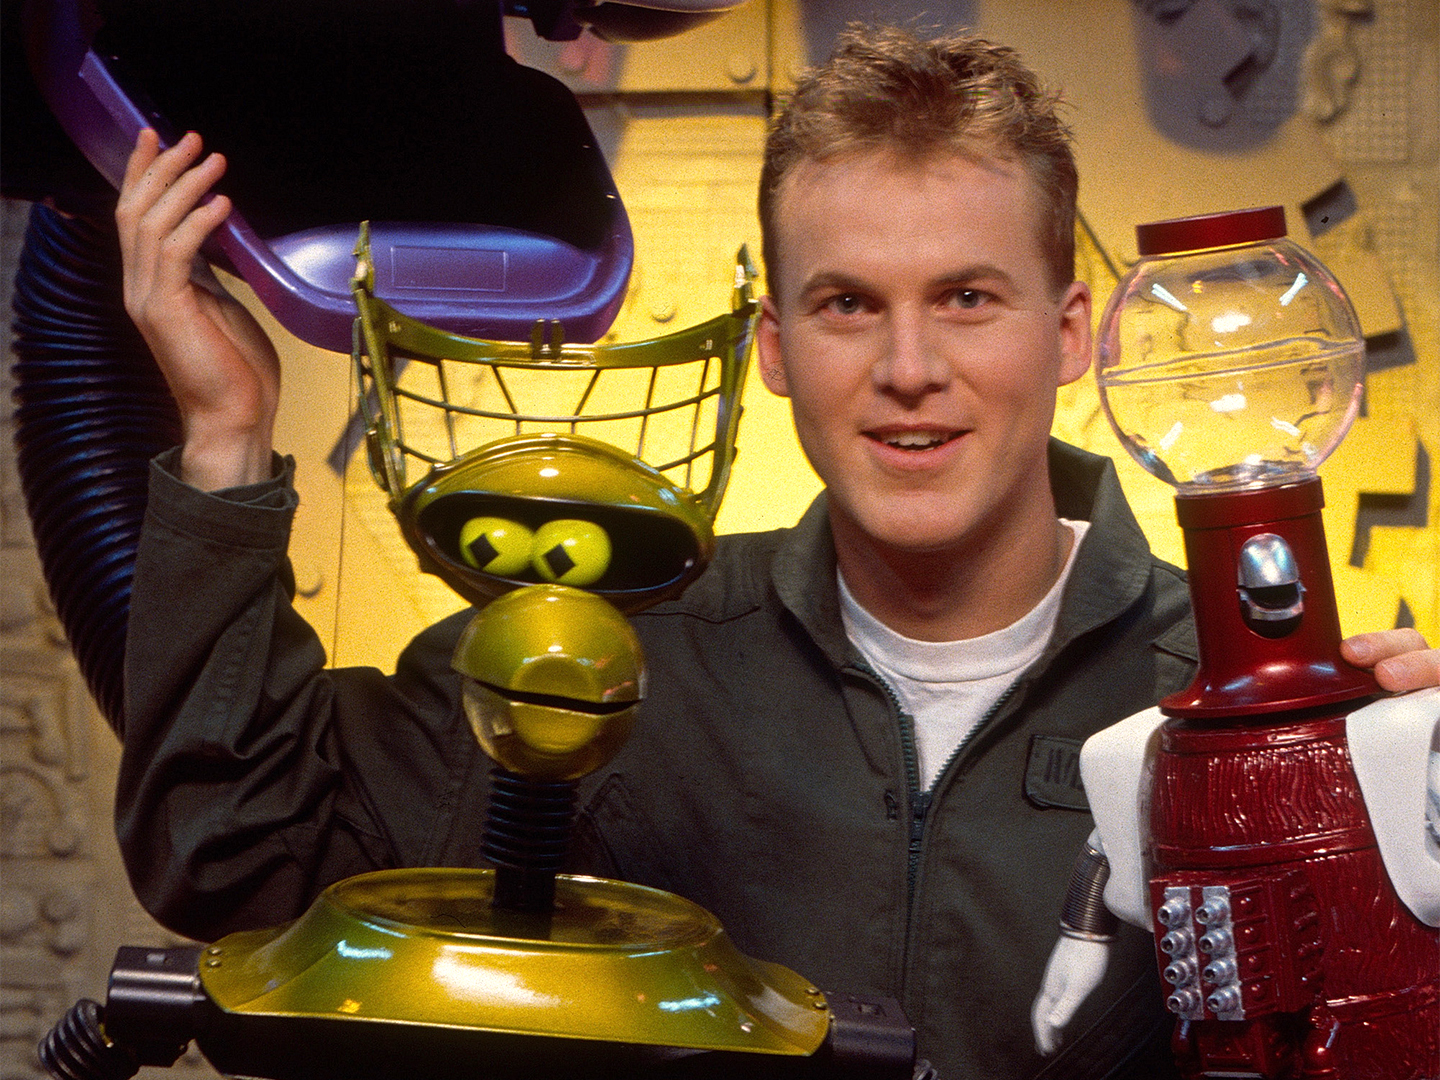 mystery science theater 3000 wikiquote - HD1440×1080